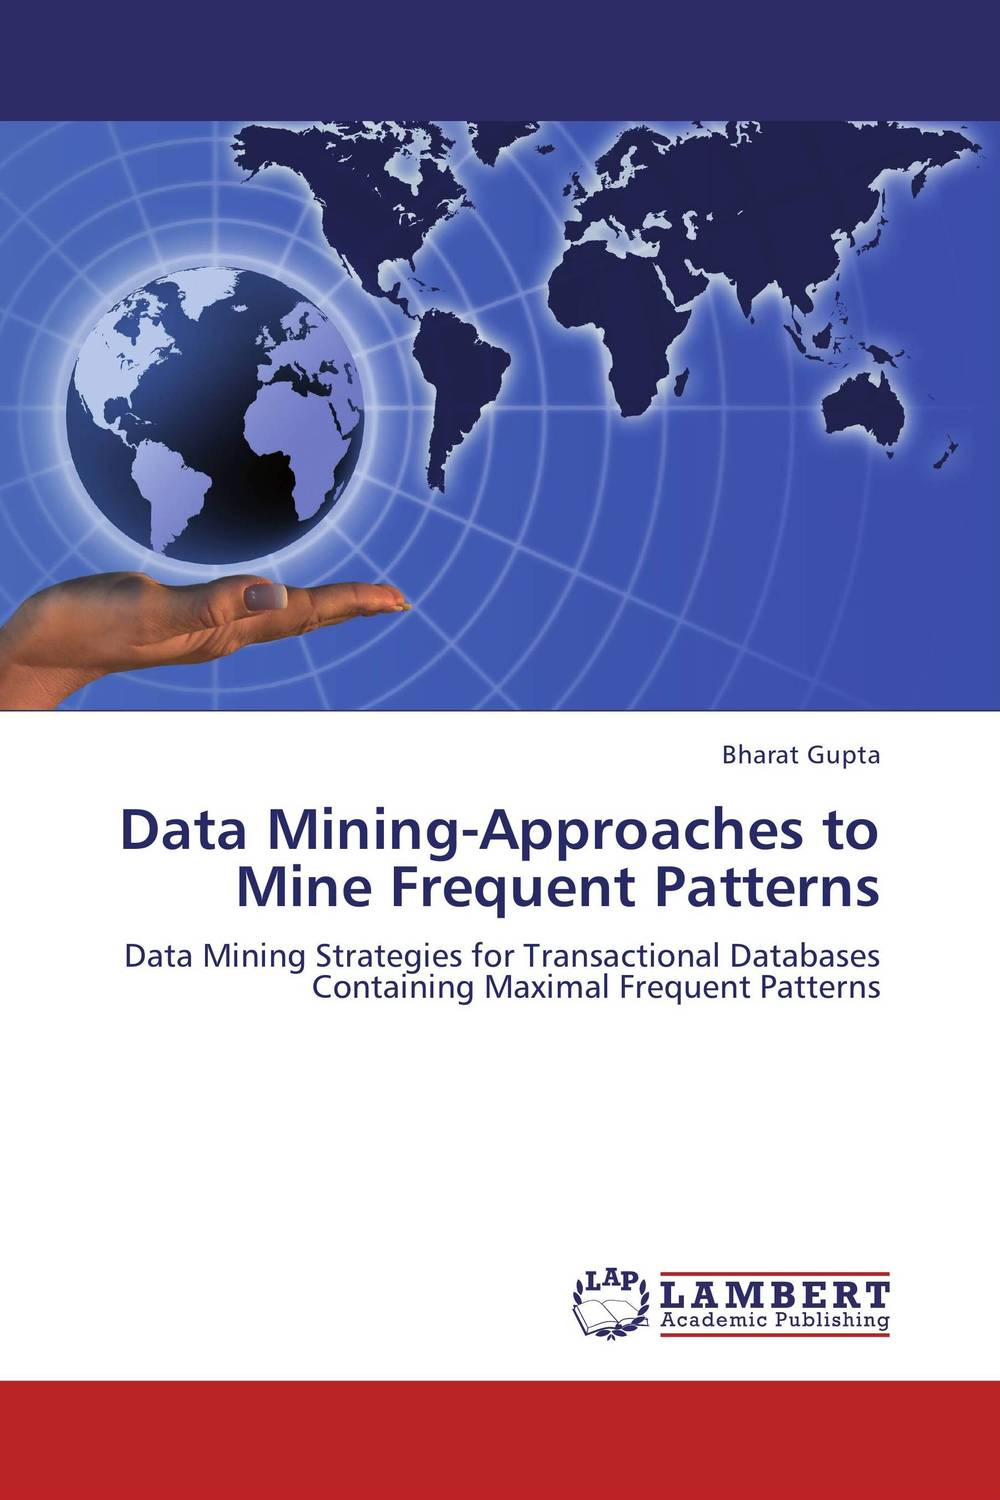 Data Mining-Approaches to Mine Frequent Patterns mining user navigation patterns from web access log files